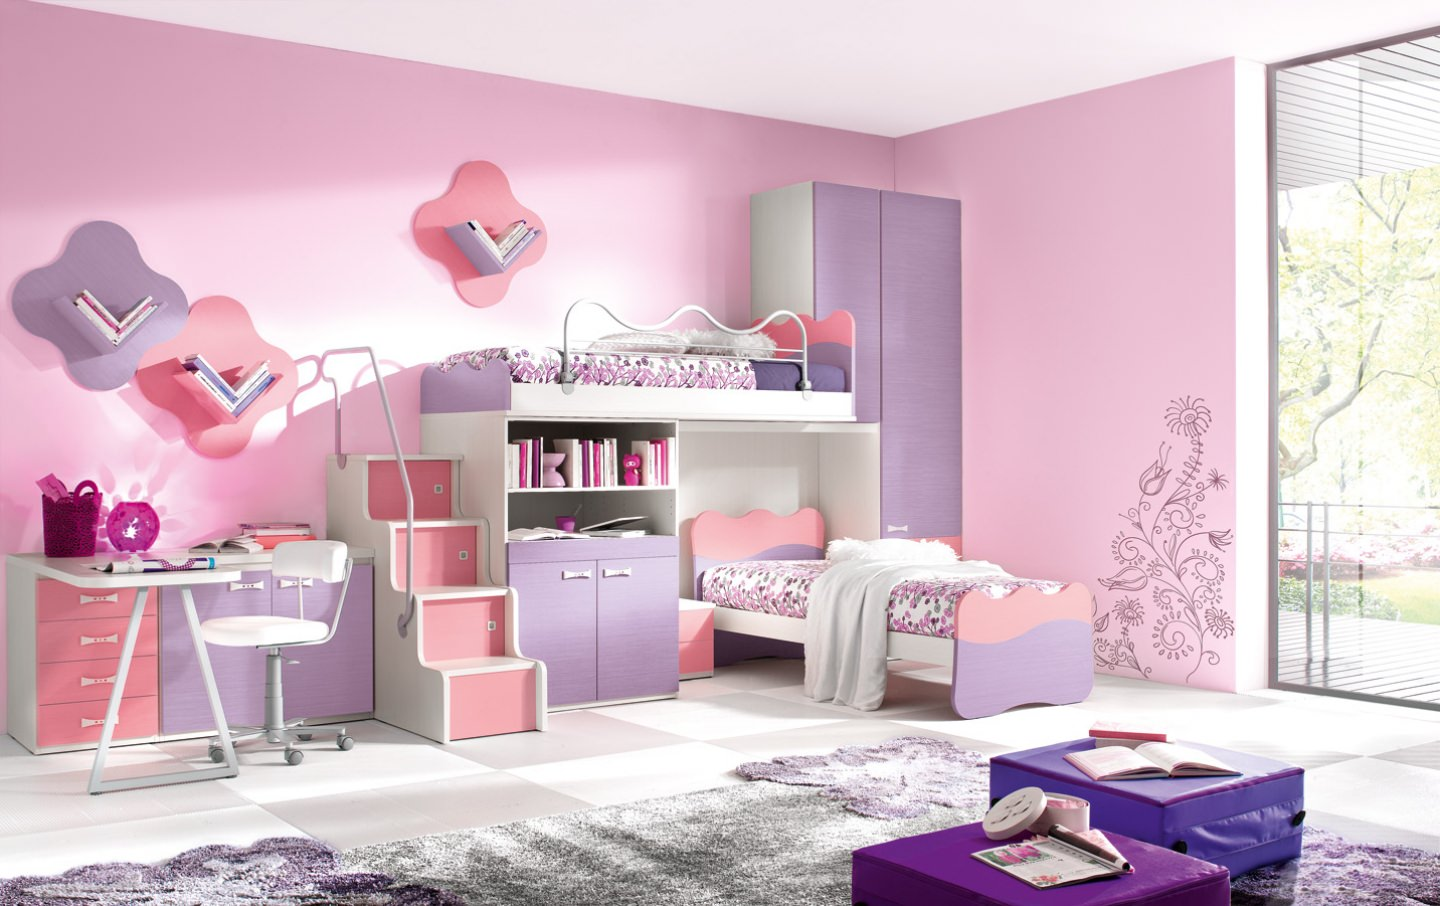 wall designs decor ideas for teenage bedrooms design trends teenage girl bedroom wall designs teenage